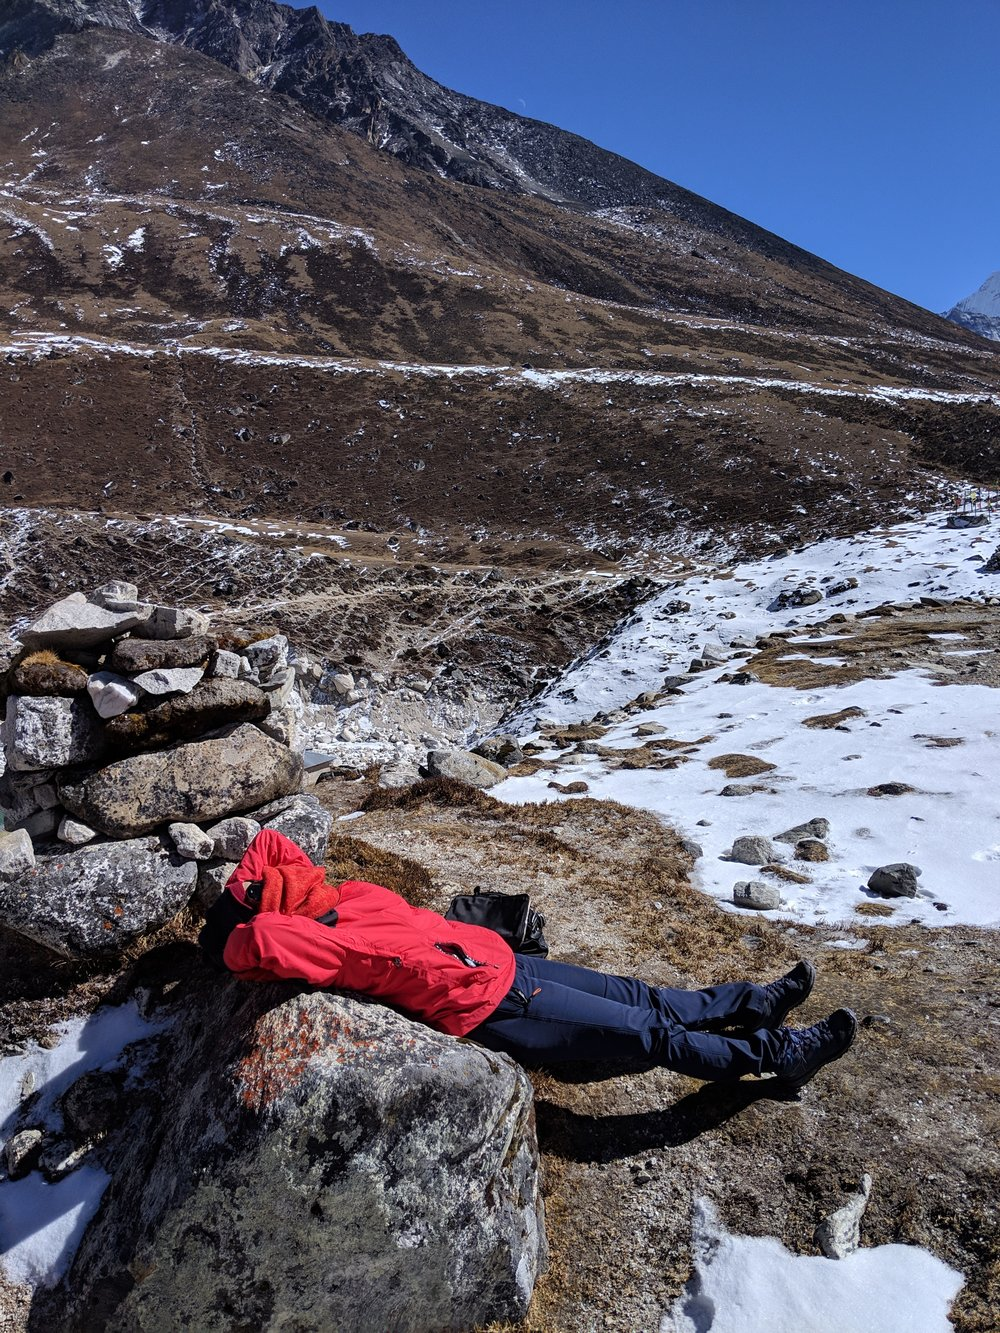 Basking in the sun atop one of the peaks- the only way to thaw!